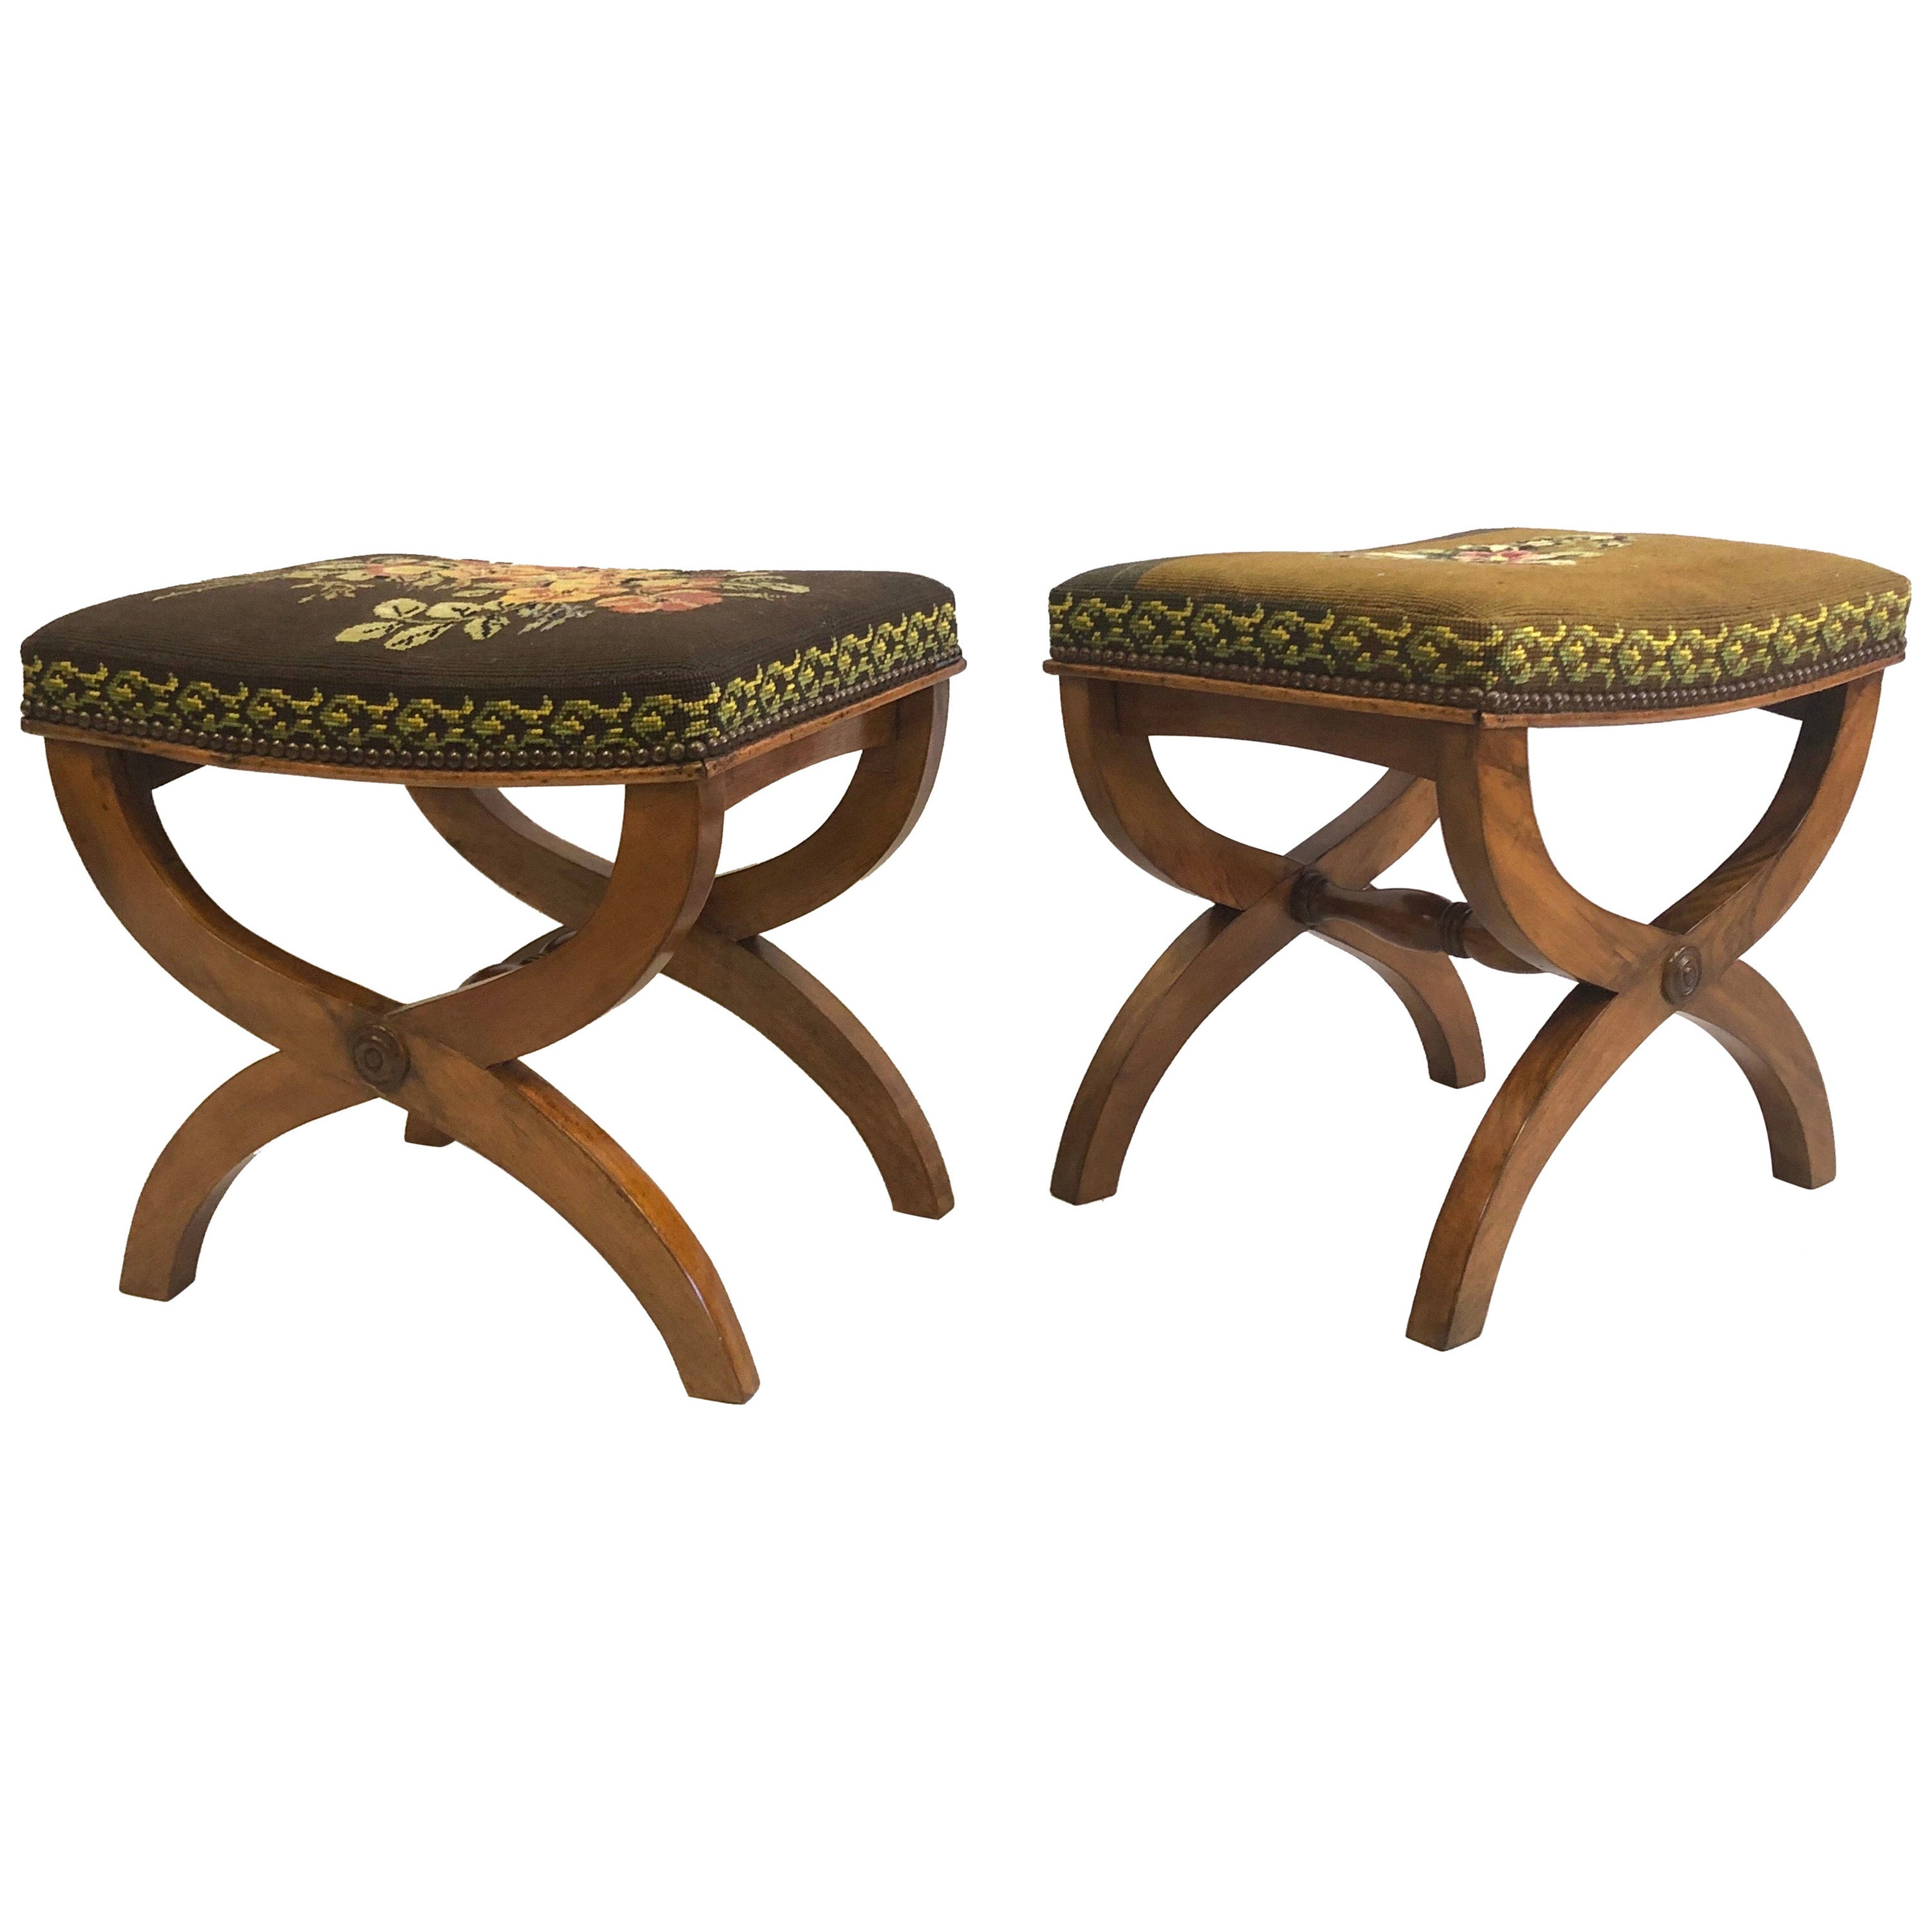 Pair of French Modern Neoclassical Stools / Benches Attributed to Andre Arbus